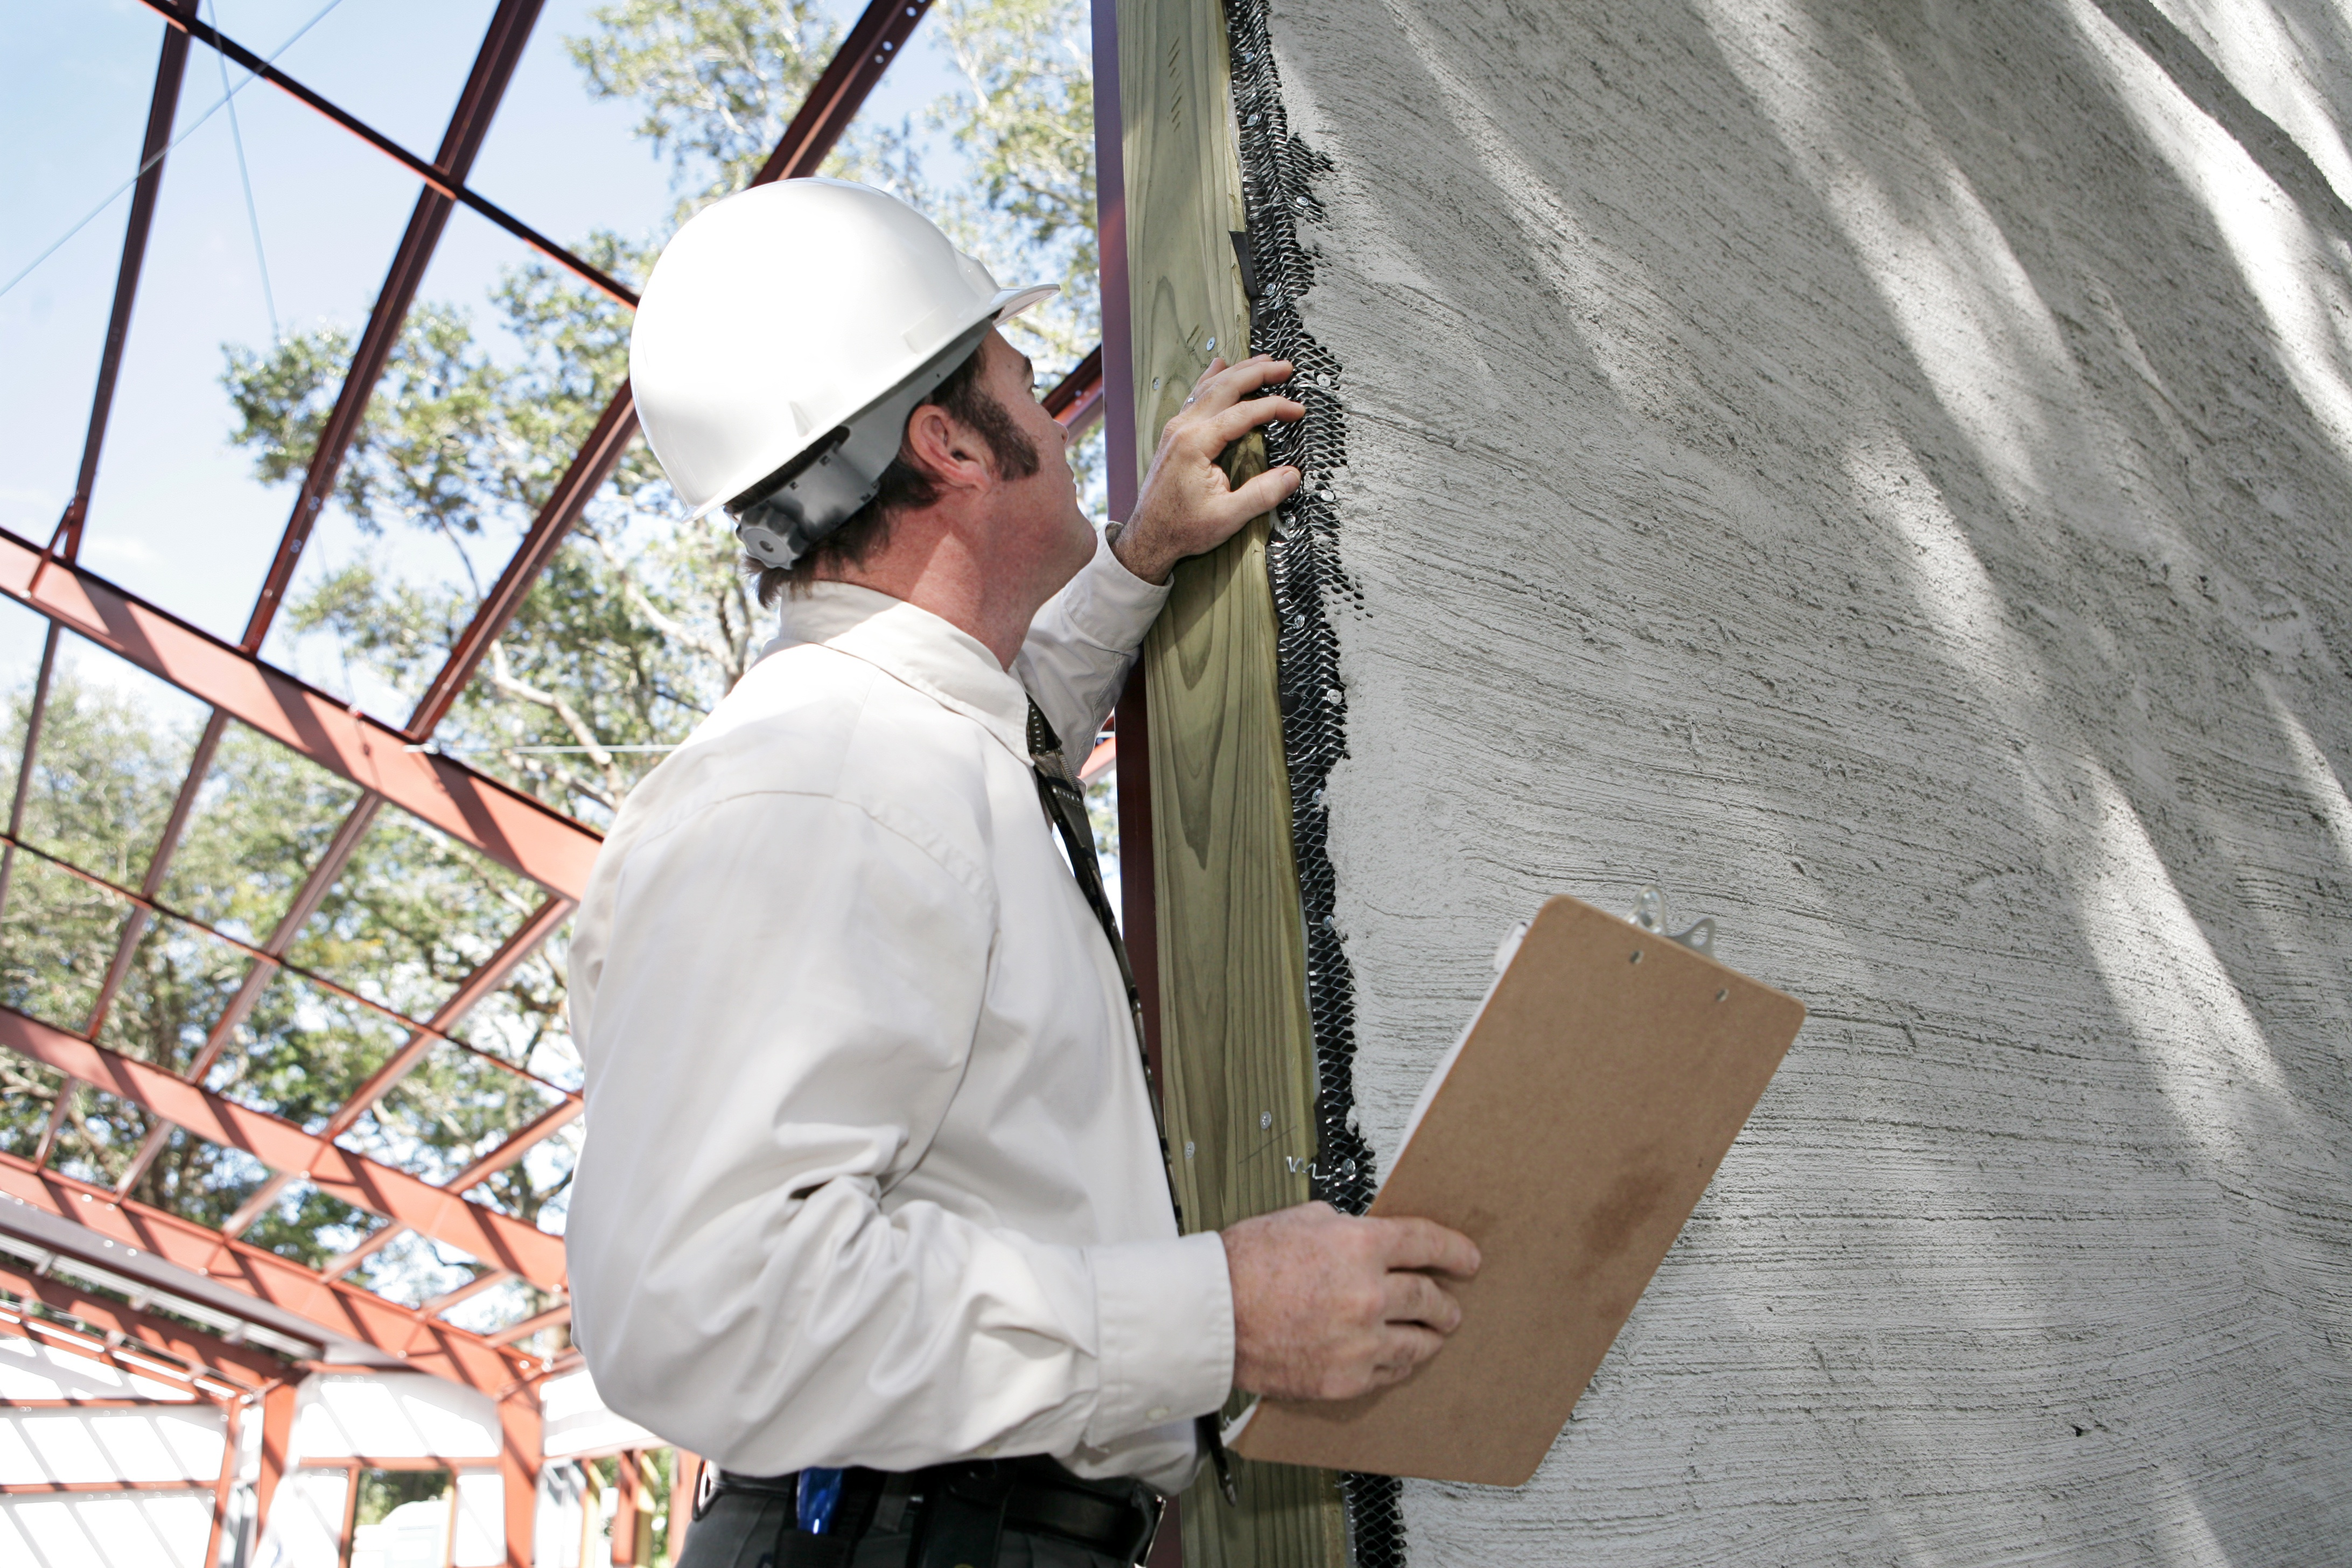 Stucco Lawsuits And Property Damage Insurance Claims